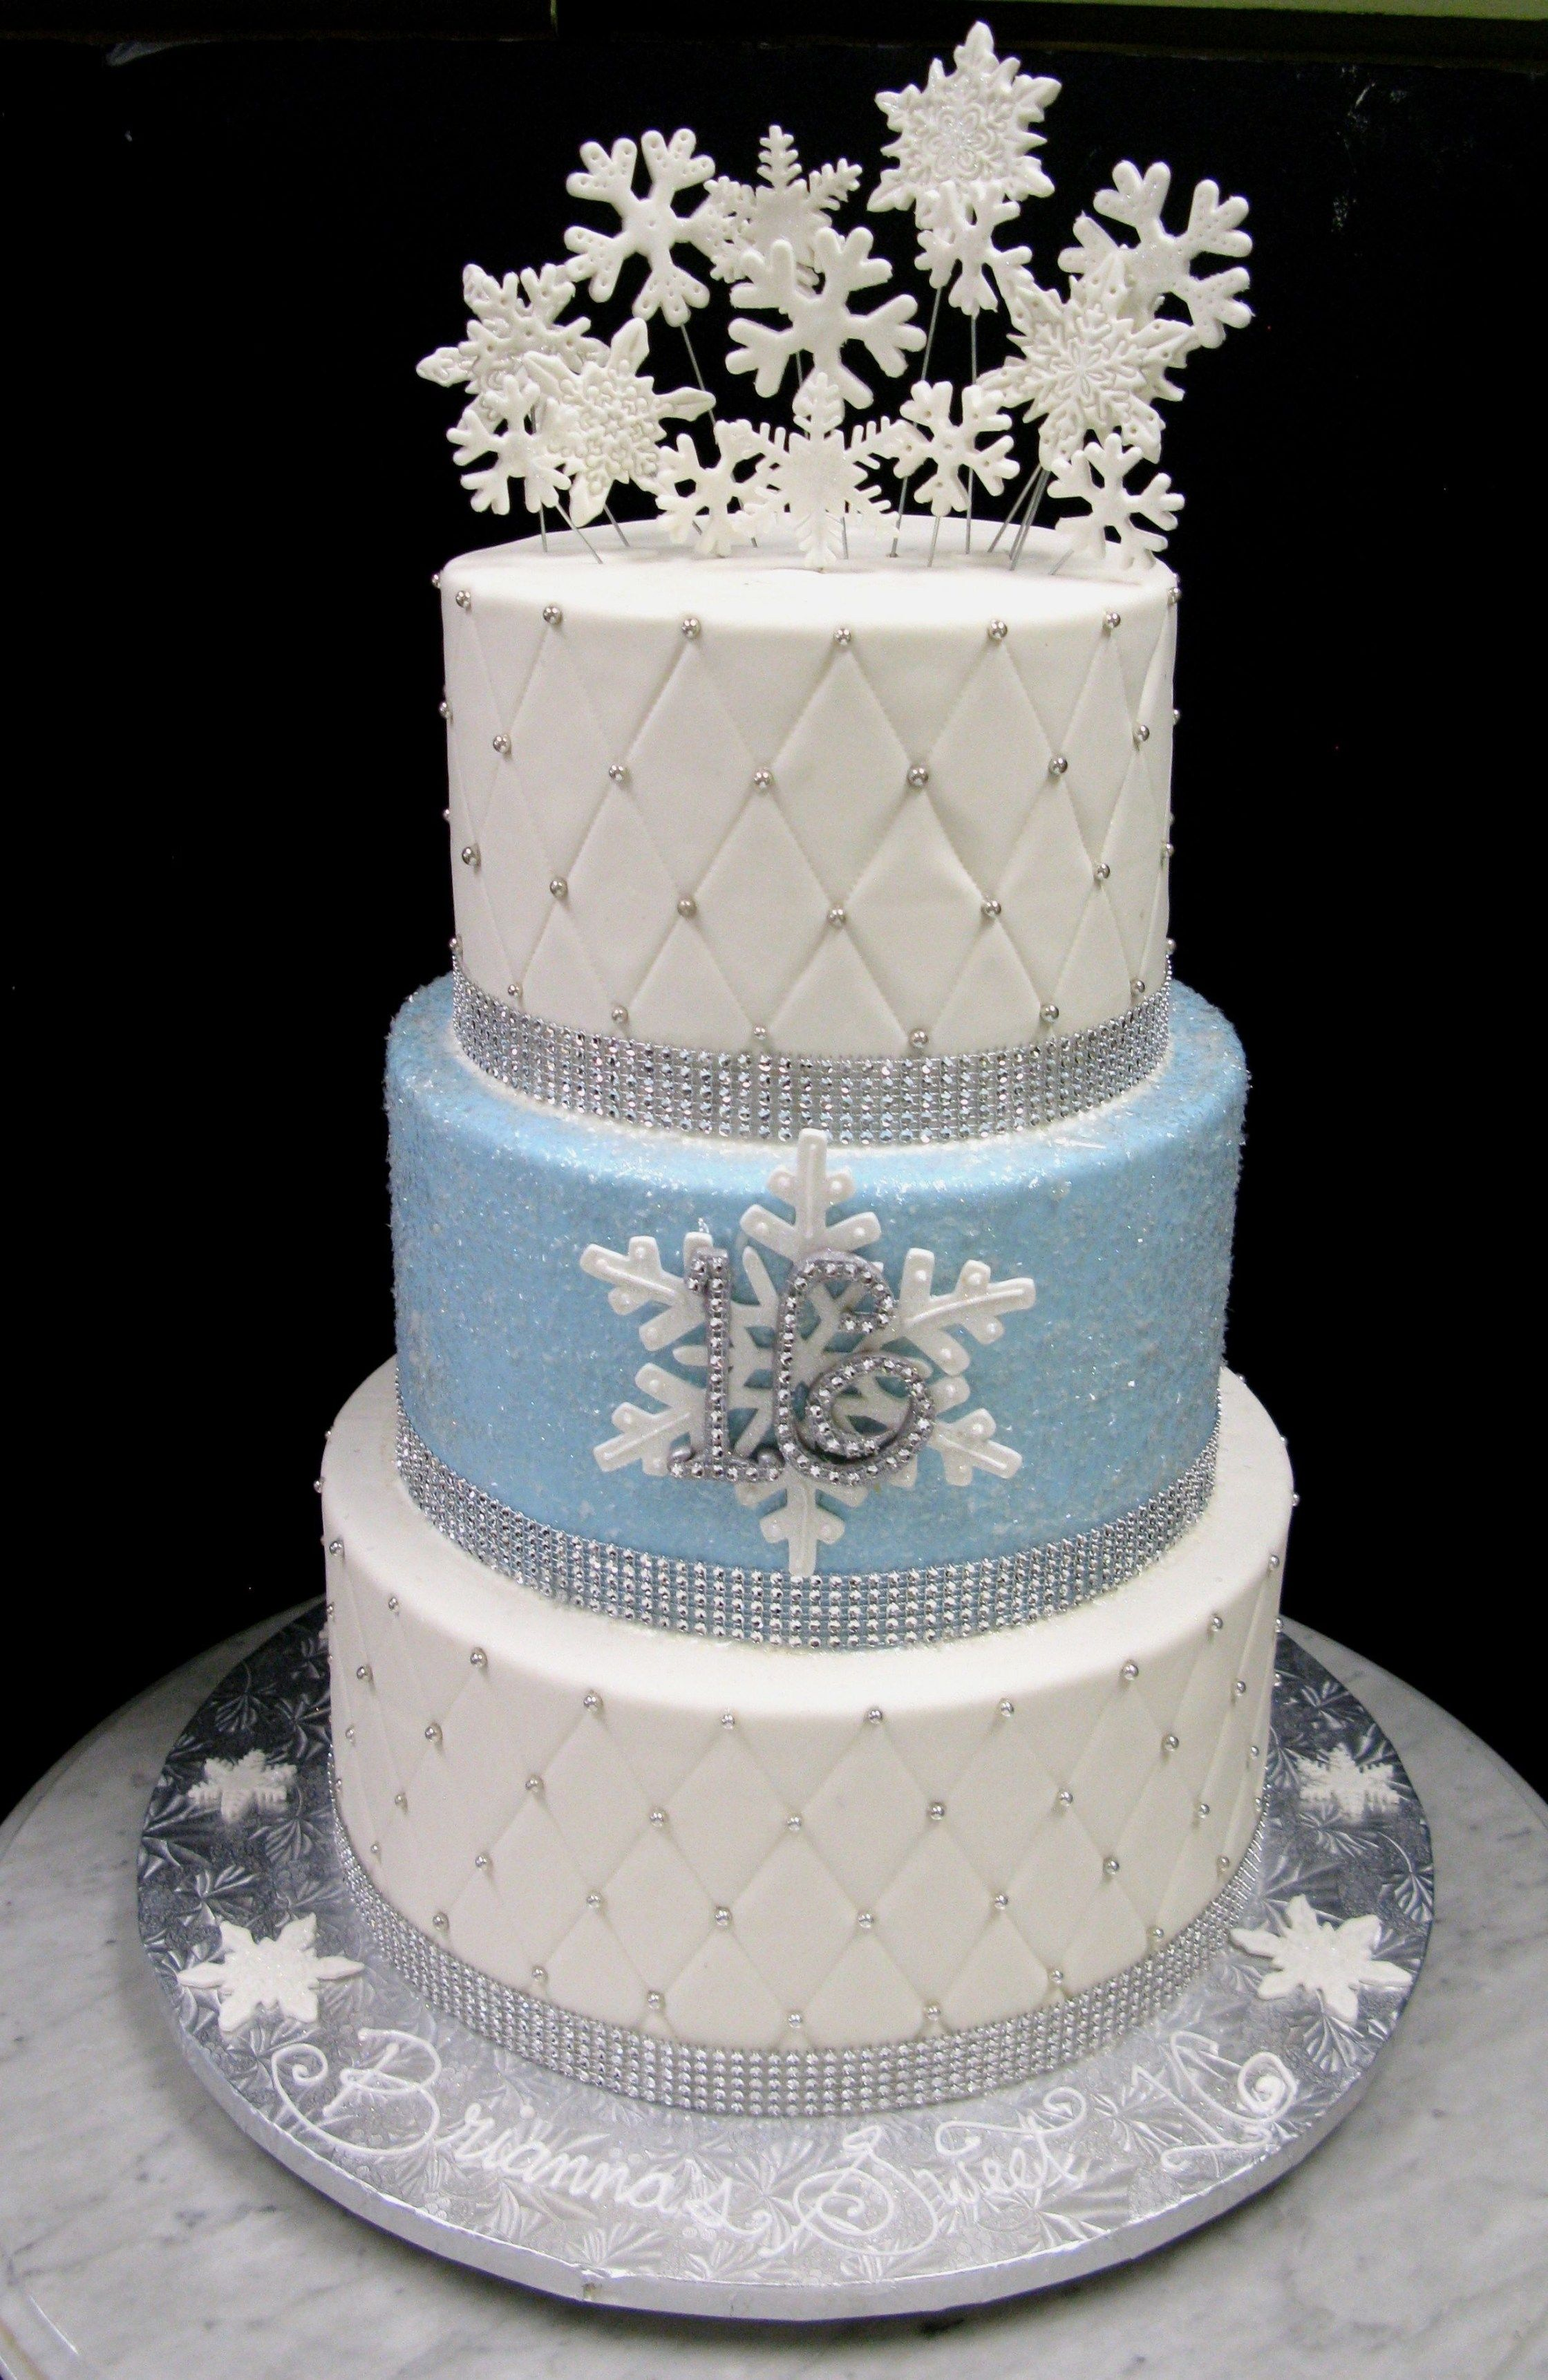 Winter Wonderland Birthday Cakes Winter Wonderland Snowflake Sweet 16 Birthday Cake Party Decor - countrydirectory.info #sweet16cakes